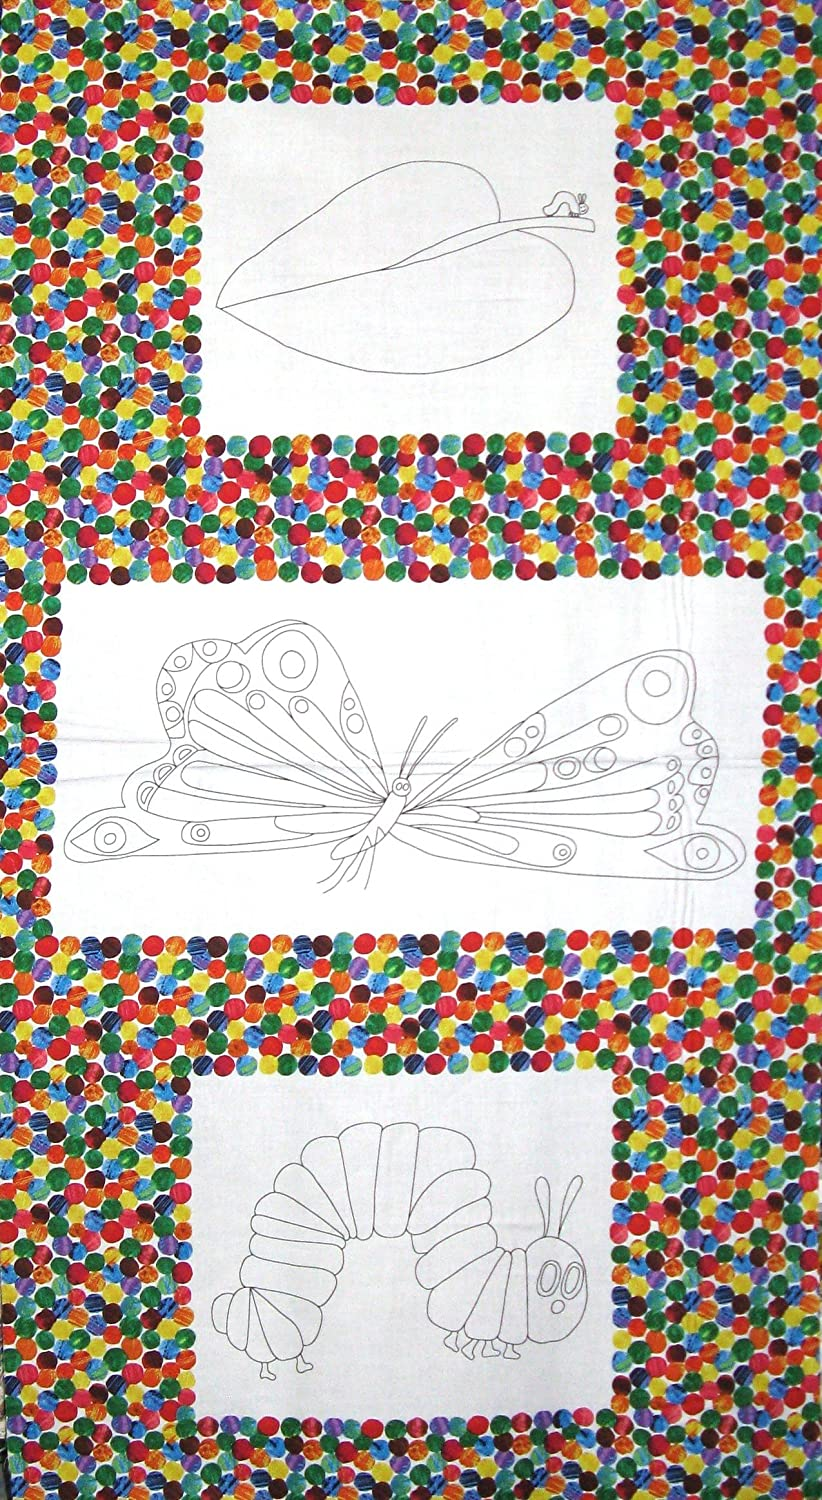 Eric Carle The Very Hungry Caterpillar Coloring Book Cotton Fabric by The Panel